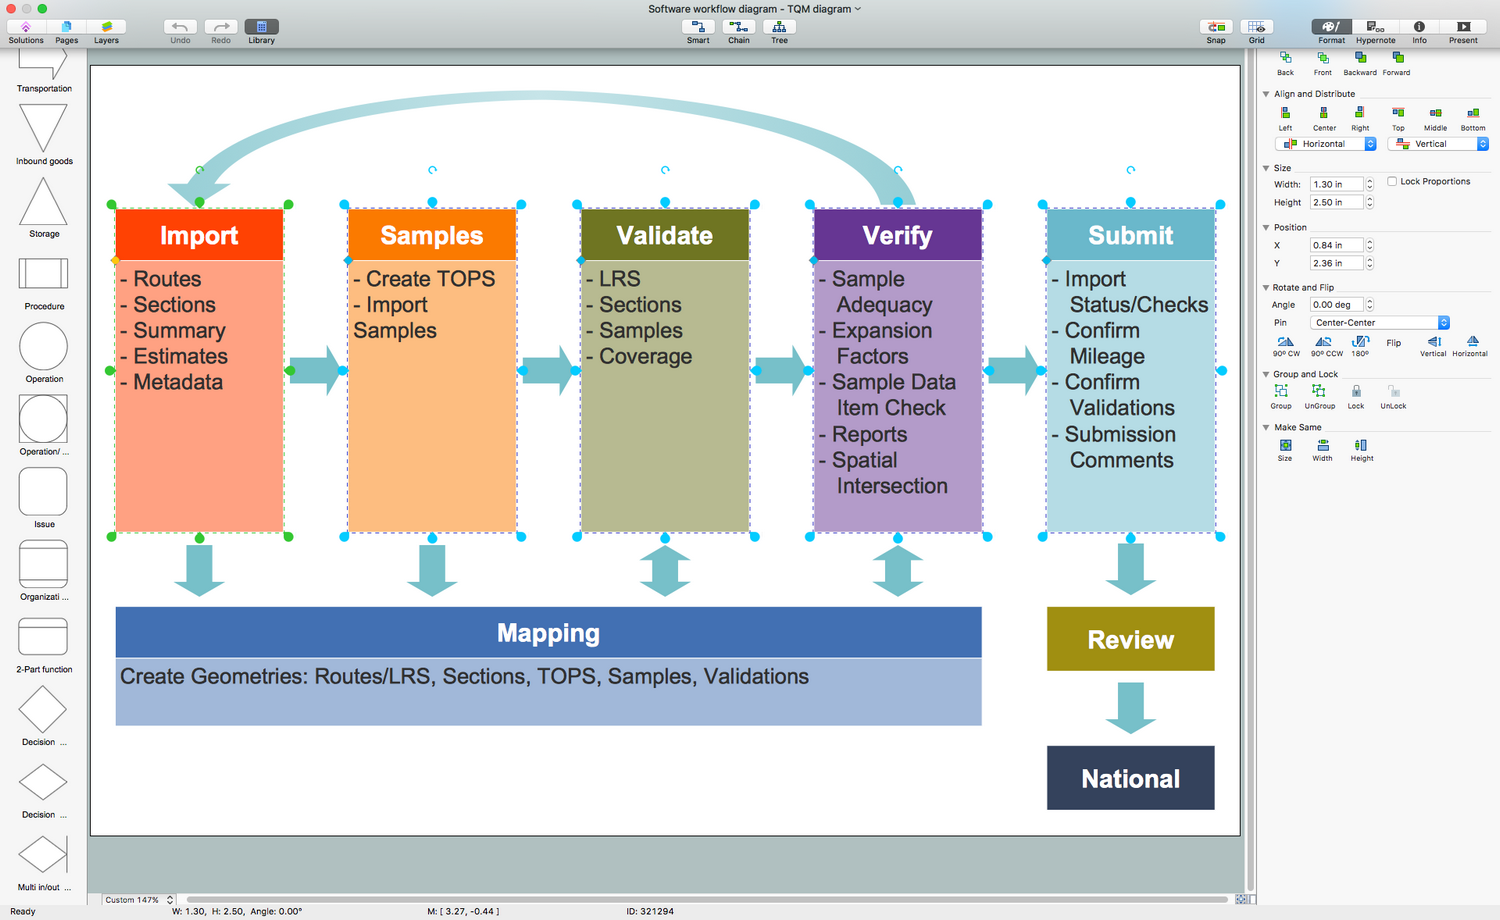 Total Quality Management (TQM) Diagrams Solution for macOS